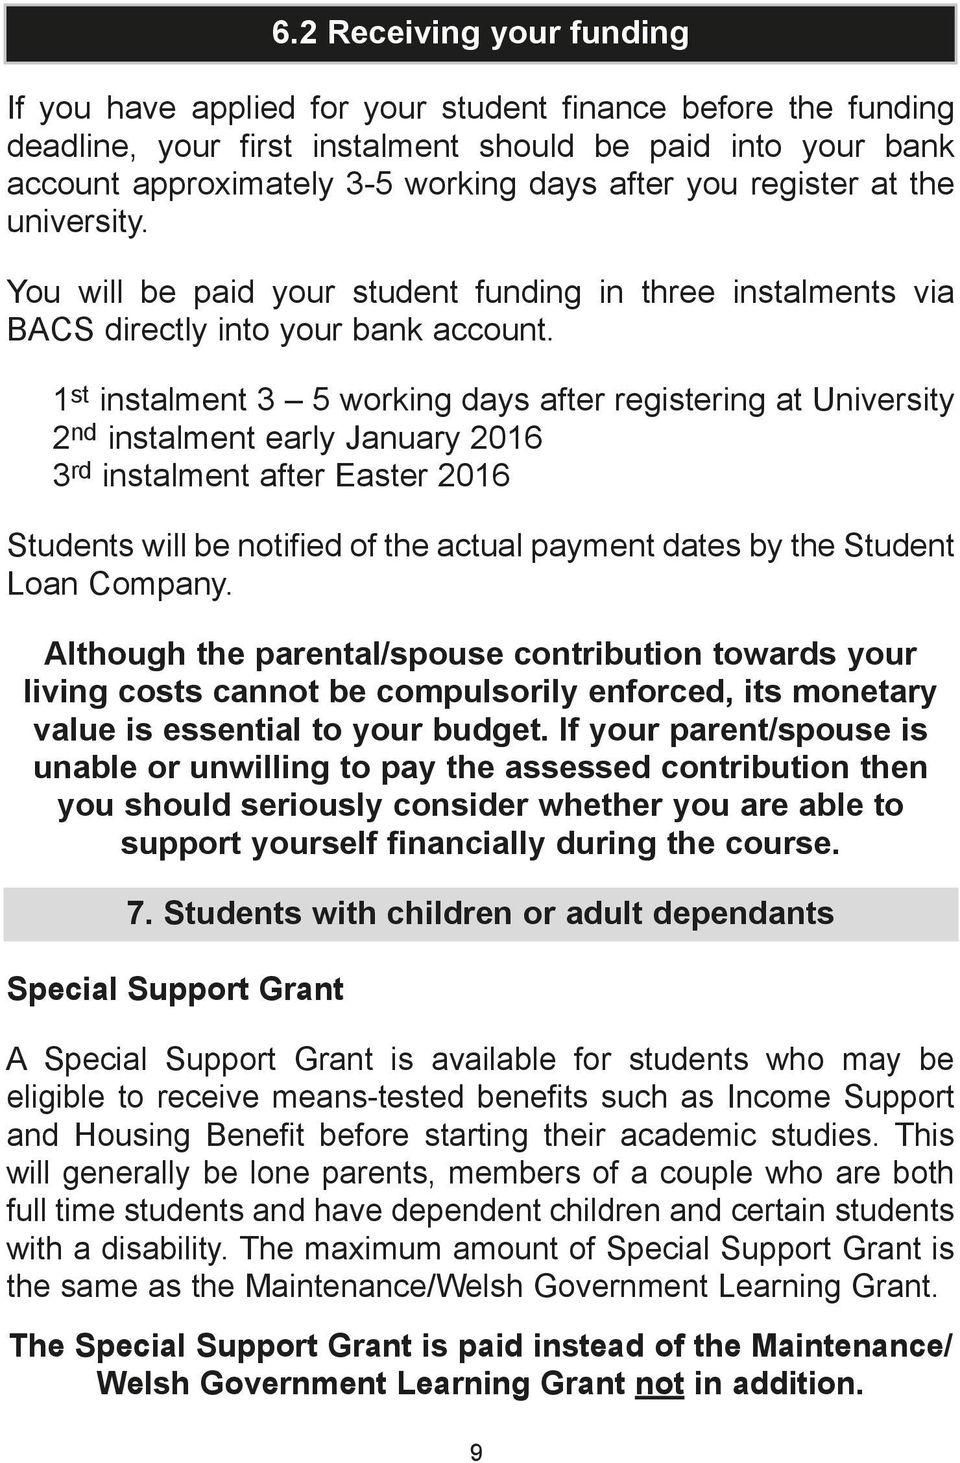 1 st instalment 3 5 working days after registering at University 2 nd instalment early January 2016 3 rd instalment after Easter 2016 Students will be notified of the actual payment dates by the